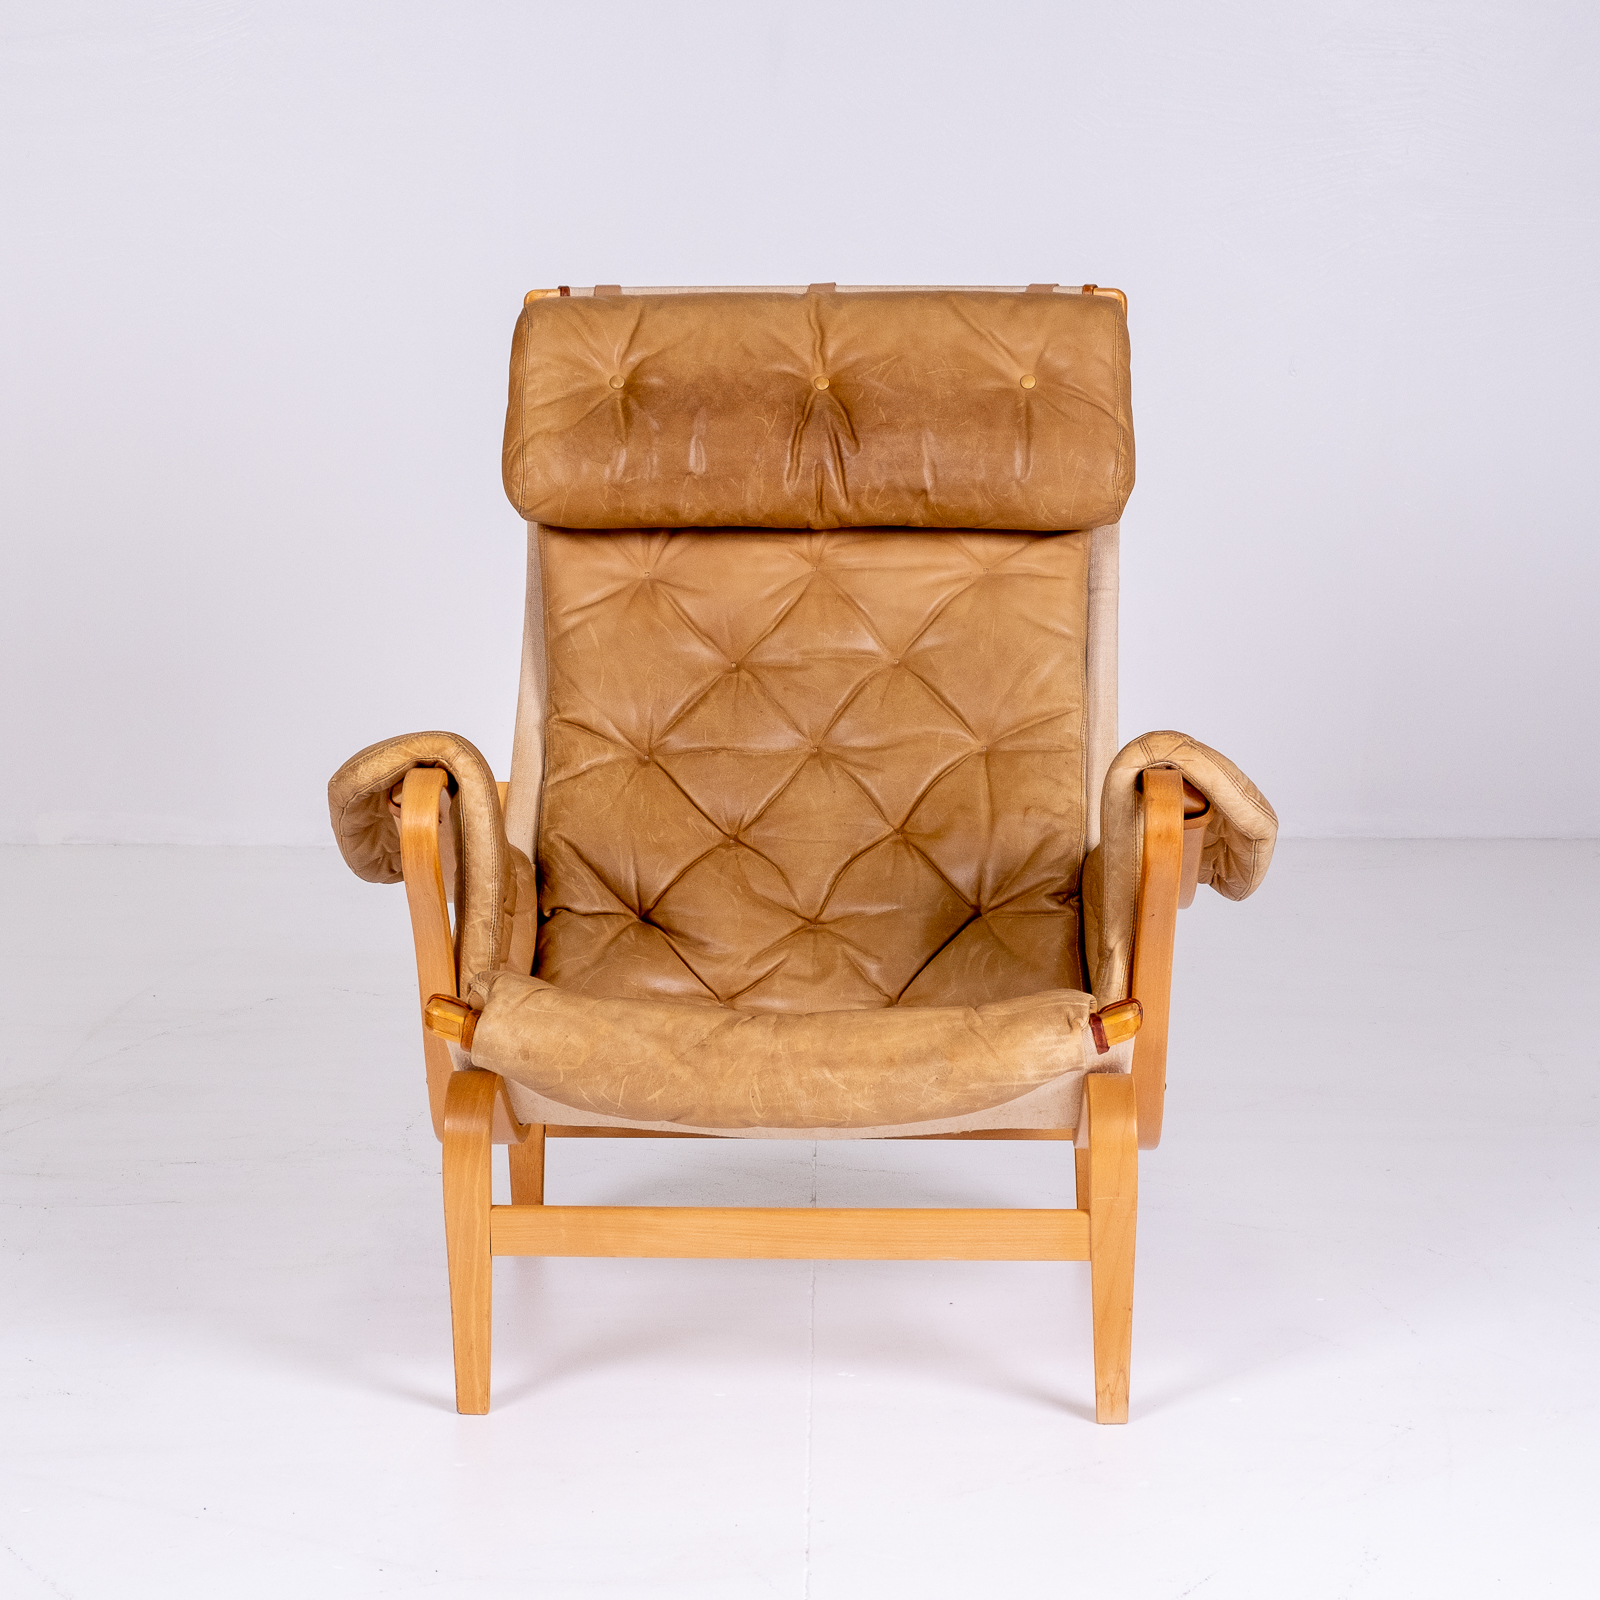 Pernilla 69 Chair By Bruno Mathsson For Dux, 1960s, Sweden 01